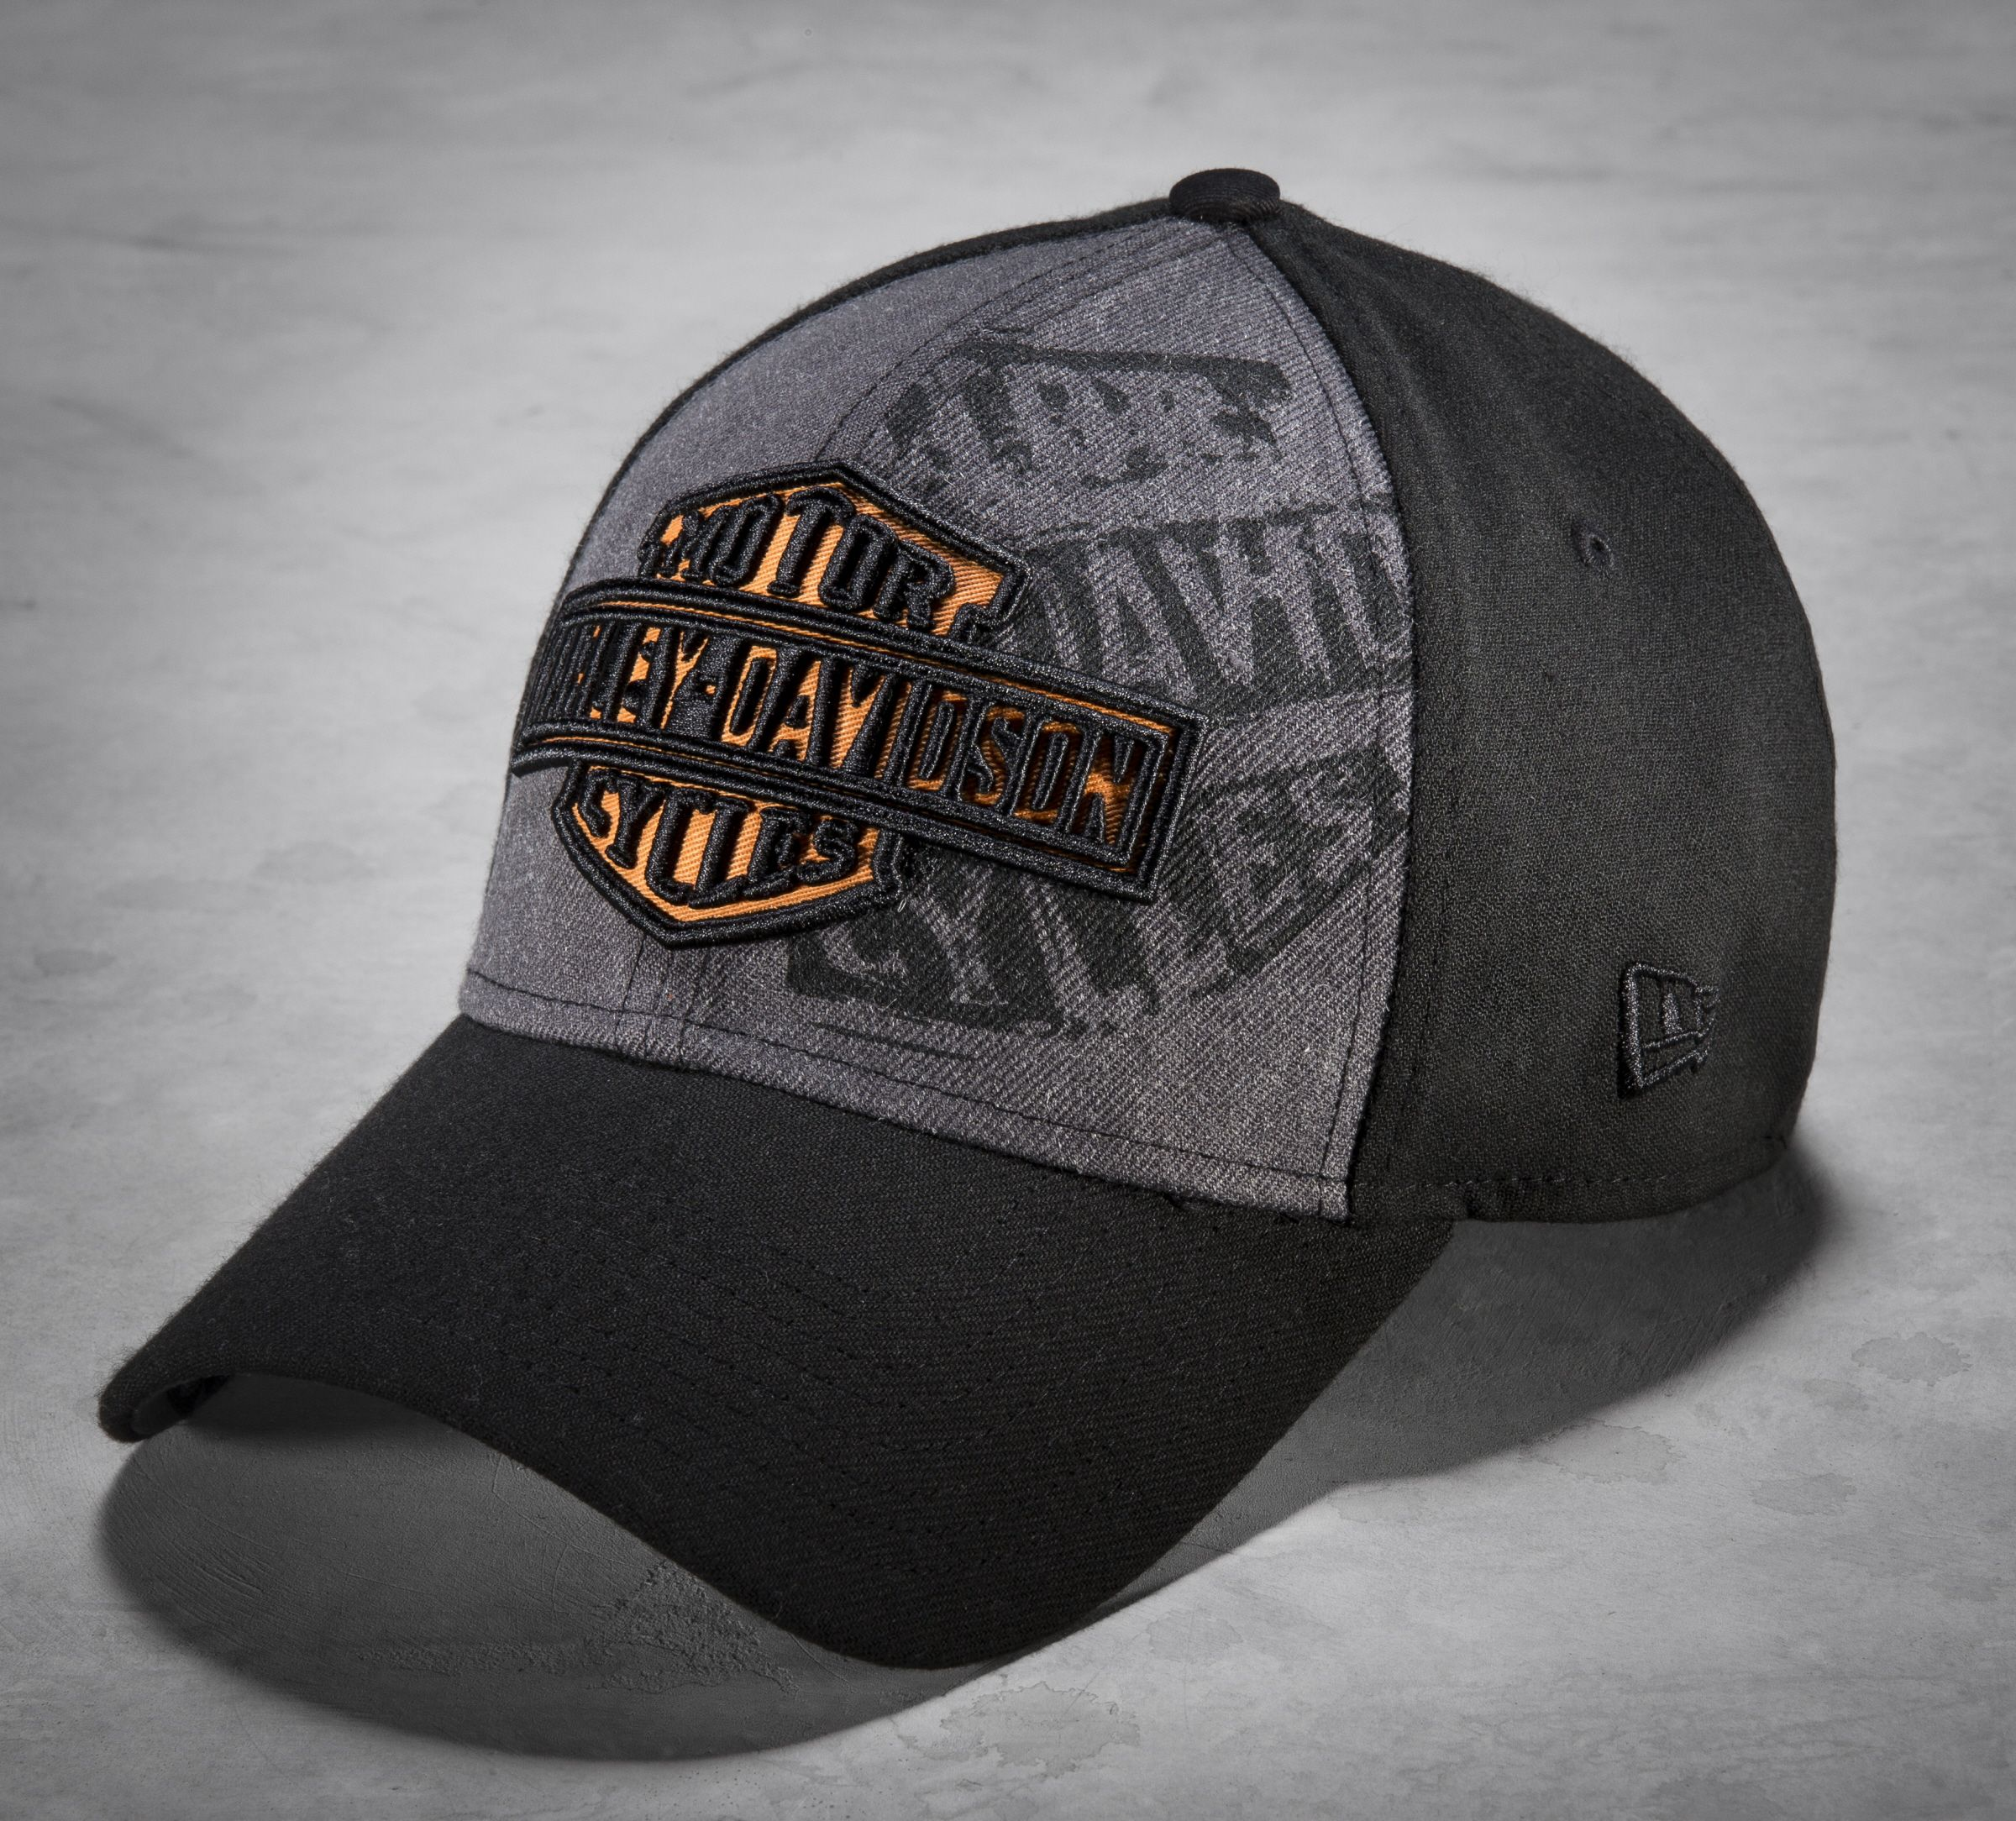 b511918ebe175 Contrasting panels and the combo print embroidery on front elevate the  style on this new men s baseball cap.